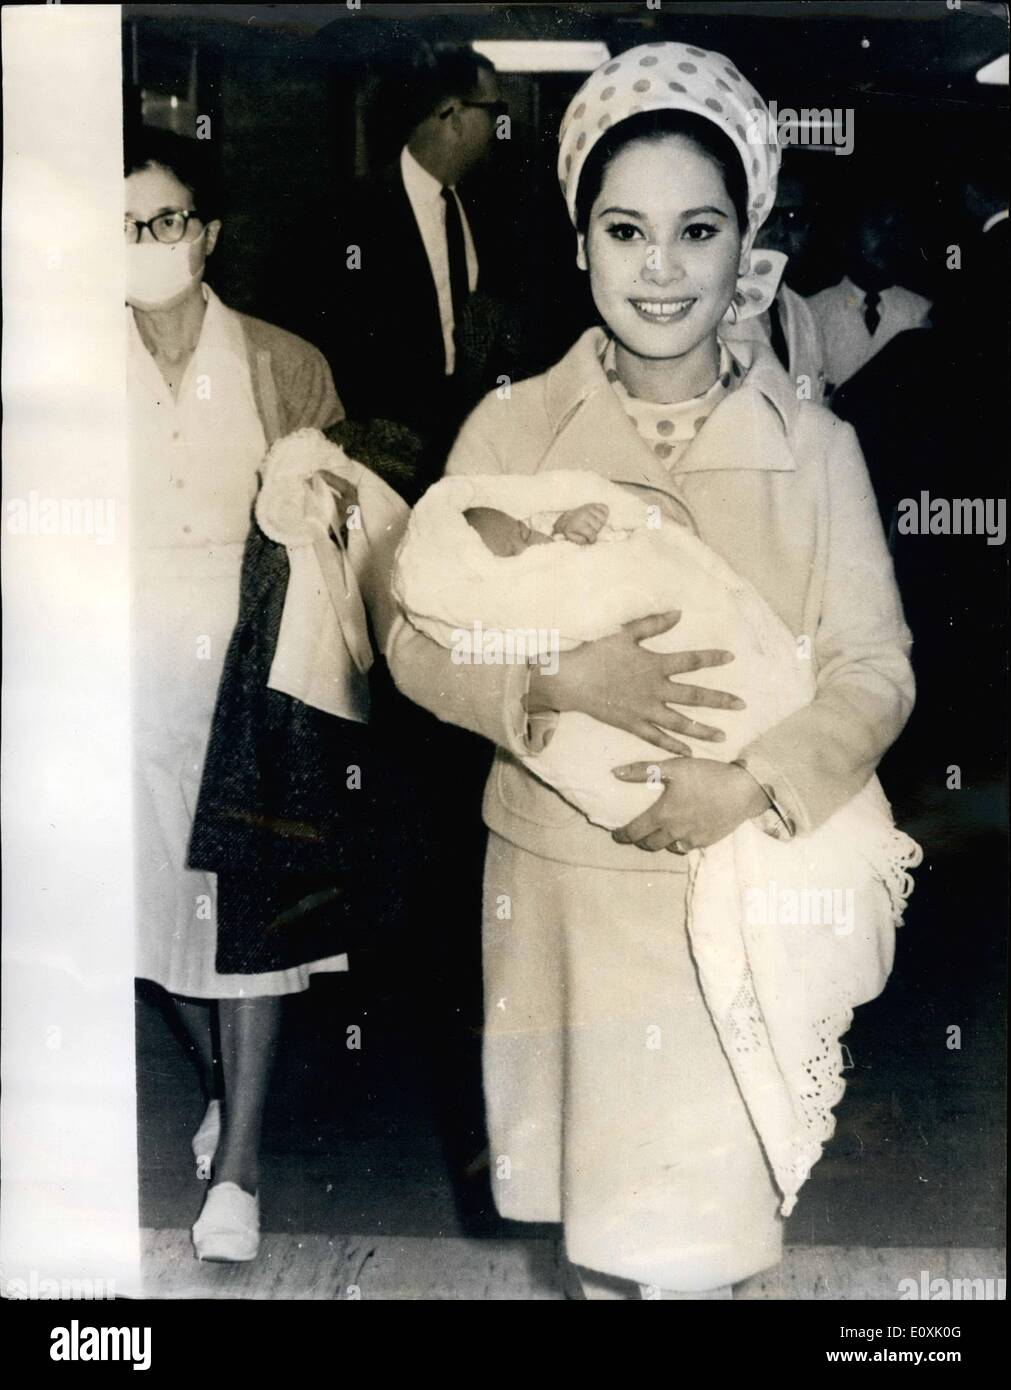 Mar. 03, 1967 - Sukarno's wife and baby leave hospital as he divorces one wife and marries schoolgirl: Ratna Sari Dewi, the Japanese wife of ousted President Sukarno, is shown leaving Koio University Hospital, Tokyo with her baby daughter Karita Sari meaning (essence of the stars). Meanwhile, the ex President has divorced his pretty 27 year old Japanes fourth wife, Mme Hajati Sukarno, whom he married on May 21, 1963, and is reported to have married a high school girl named Yurike Sanger. - Stock Image